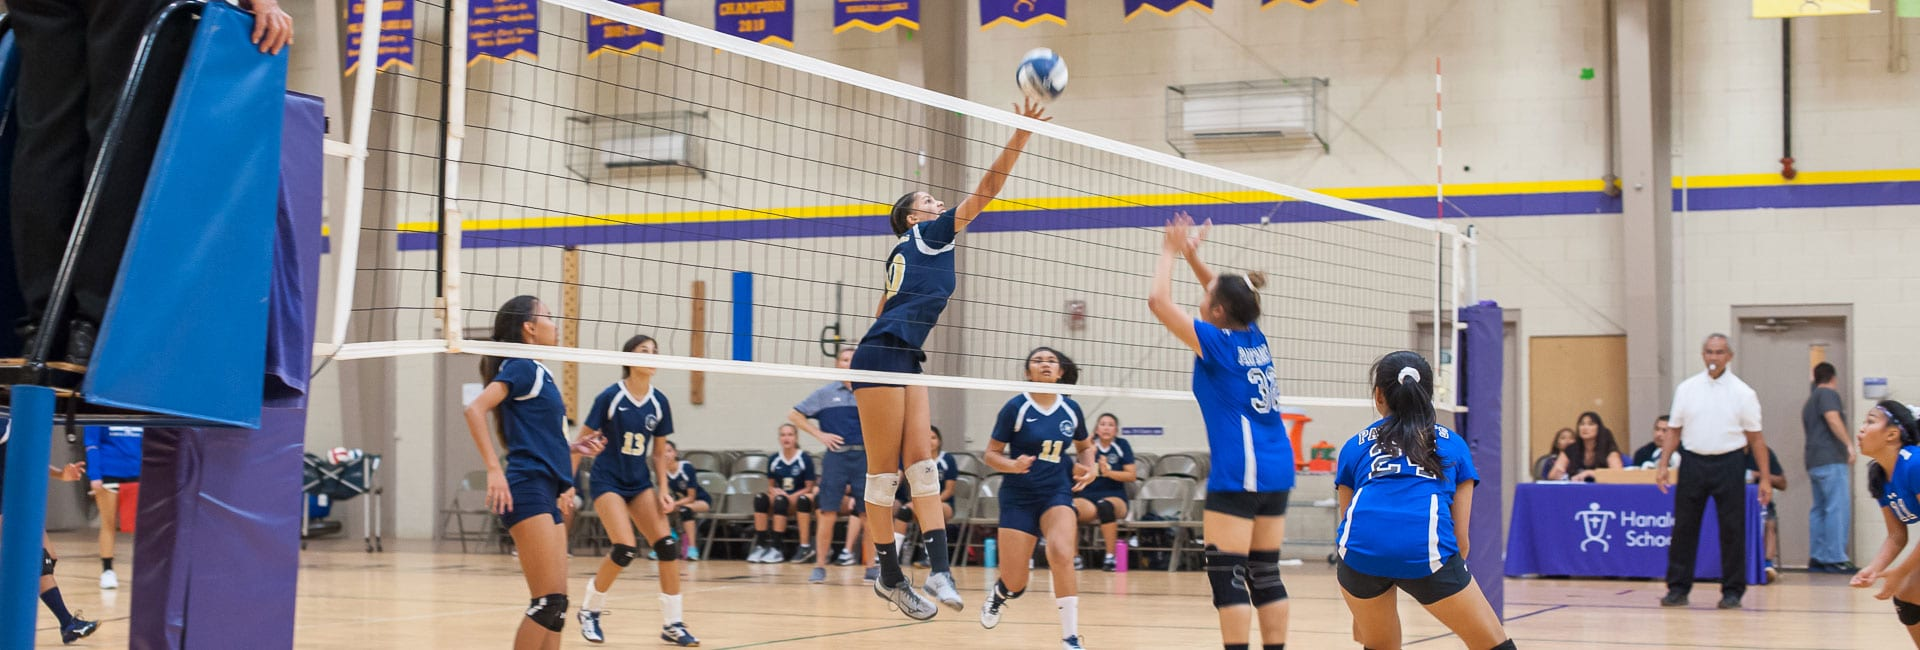 Girls volleyball player tipping ball over the net